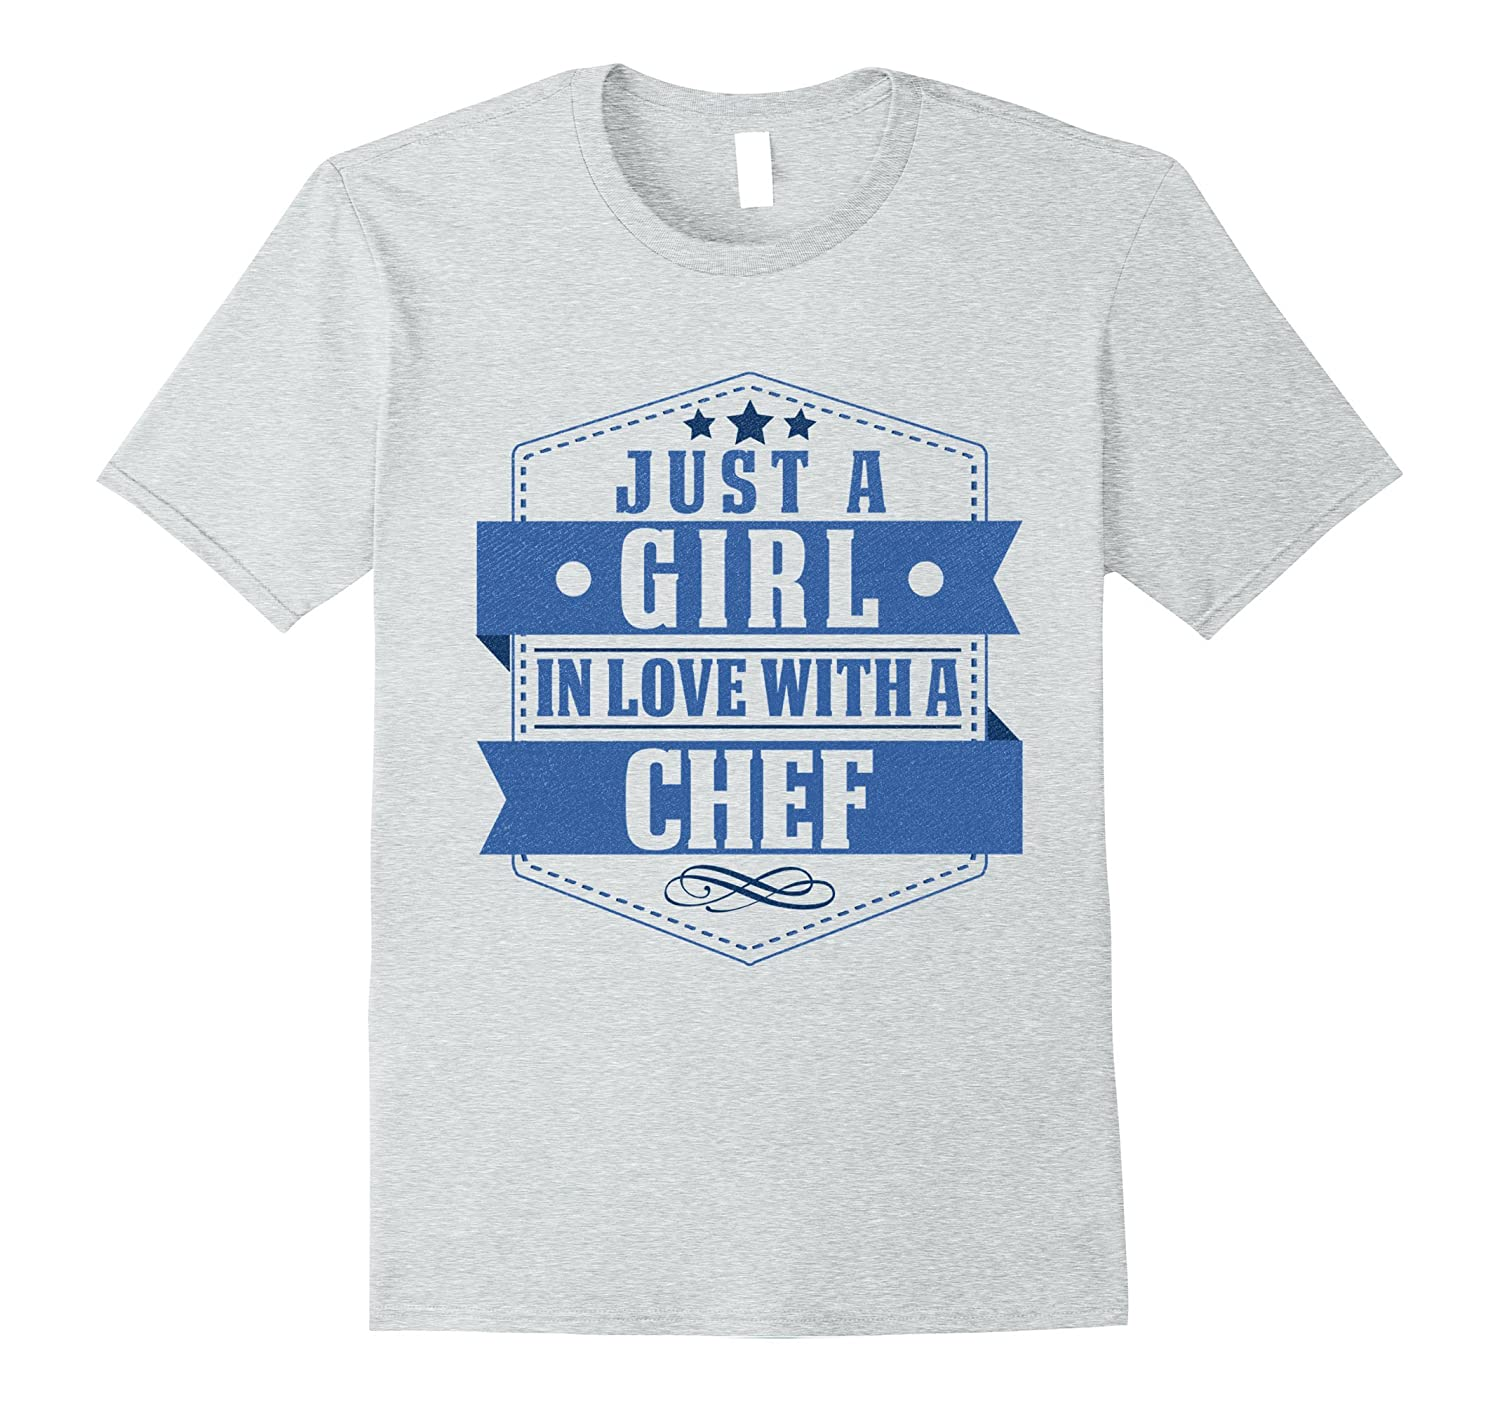 Just A Girl In Love With A Chef T-shirt Womens-TJ